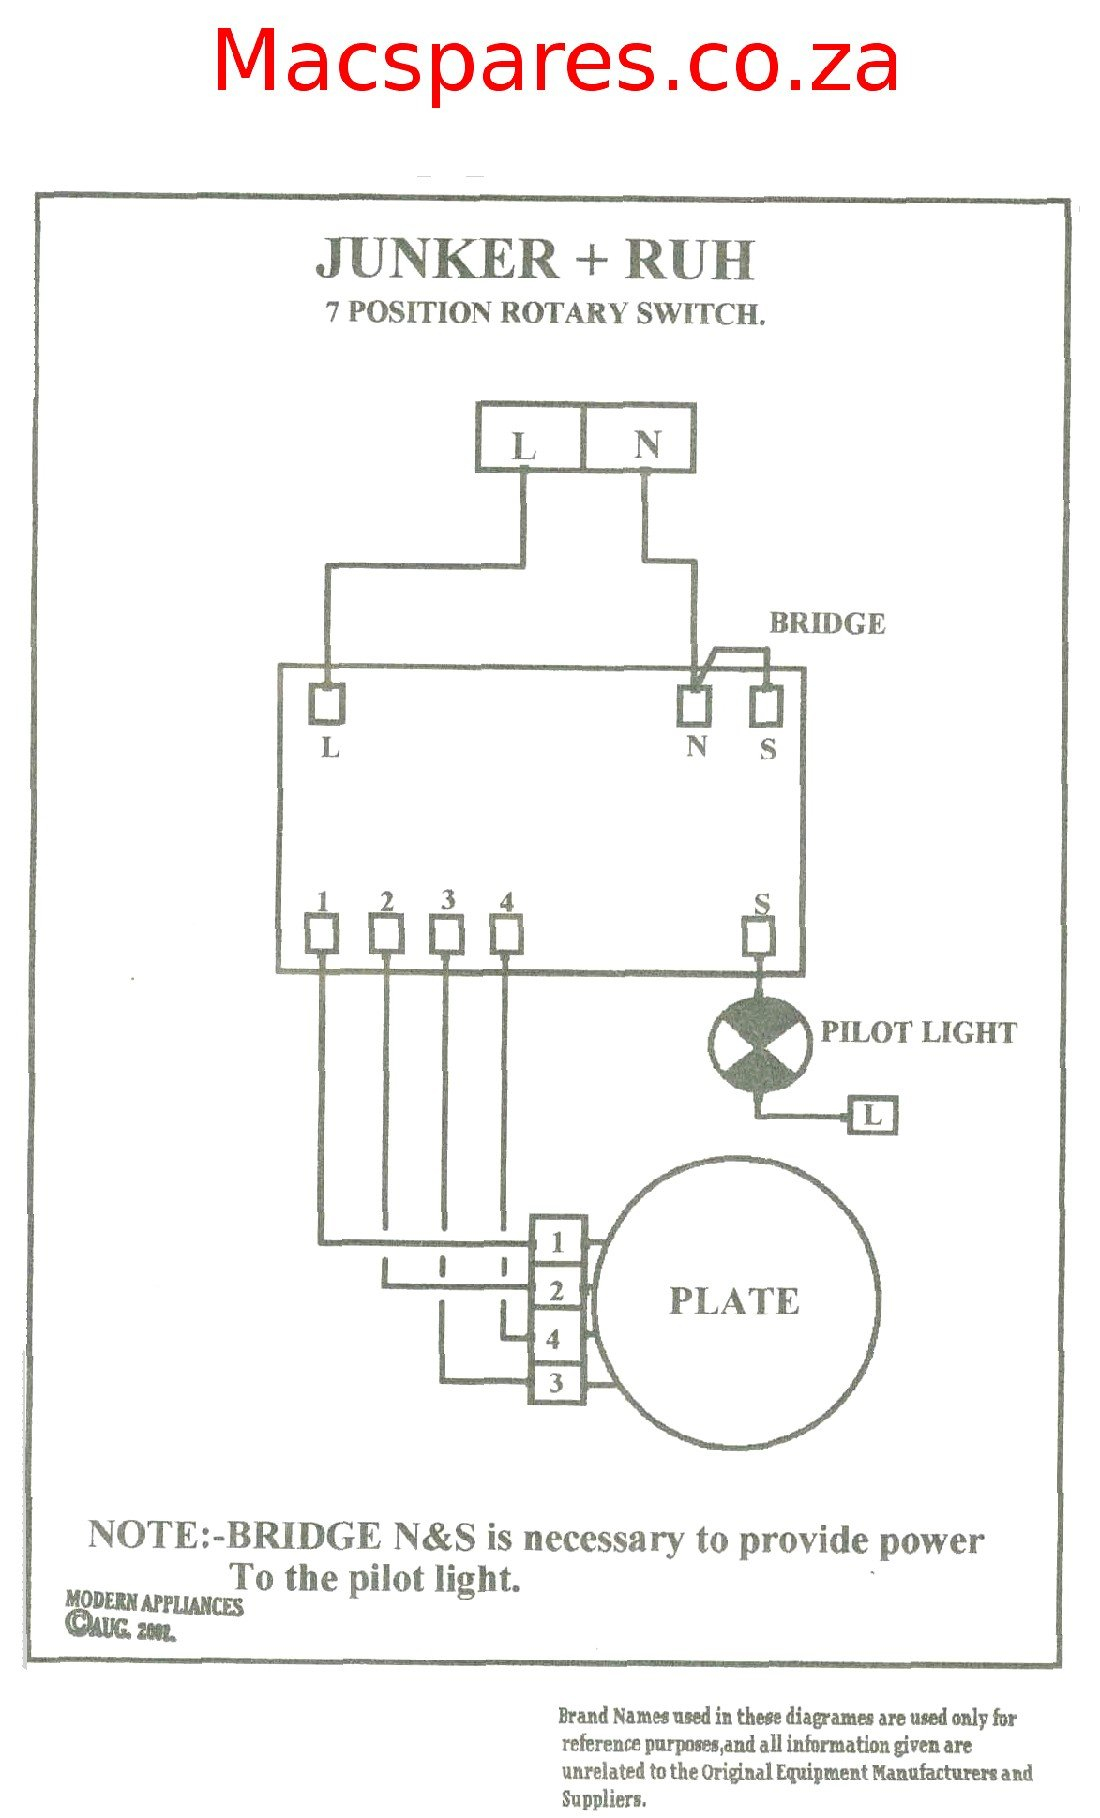 3 Position Rotary Switch Wiring Diagram from wholefoodsonabudget.com